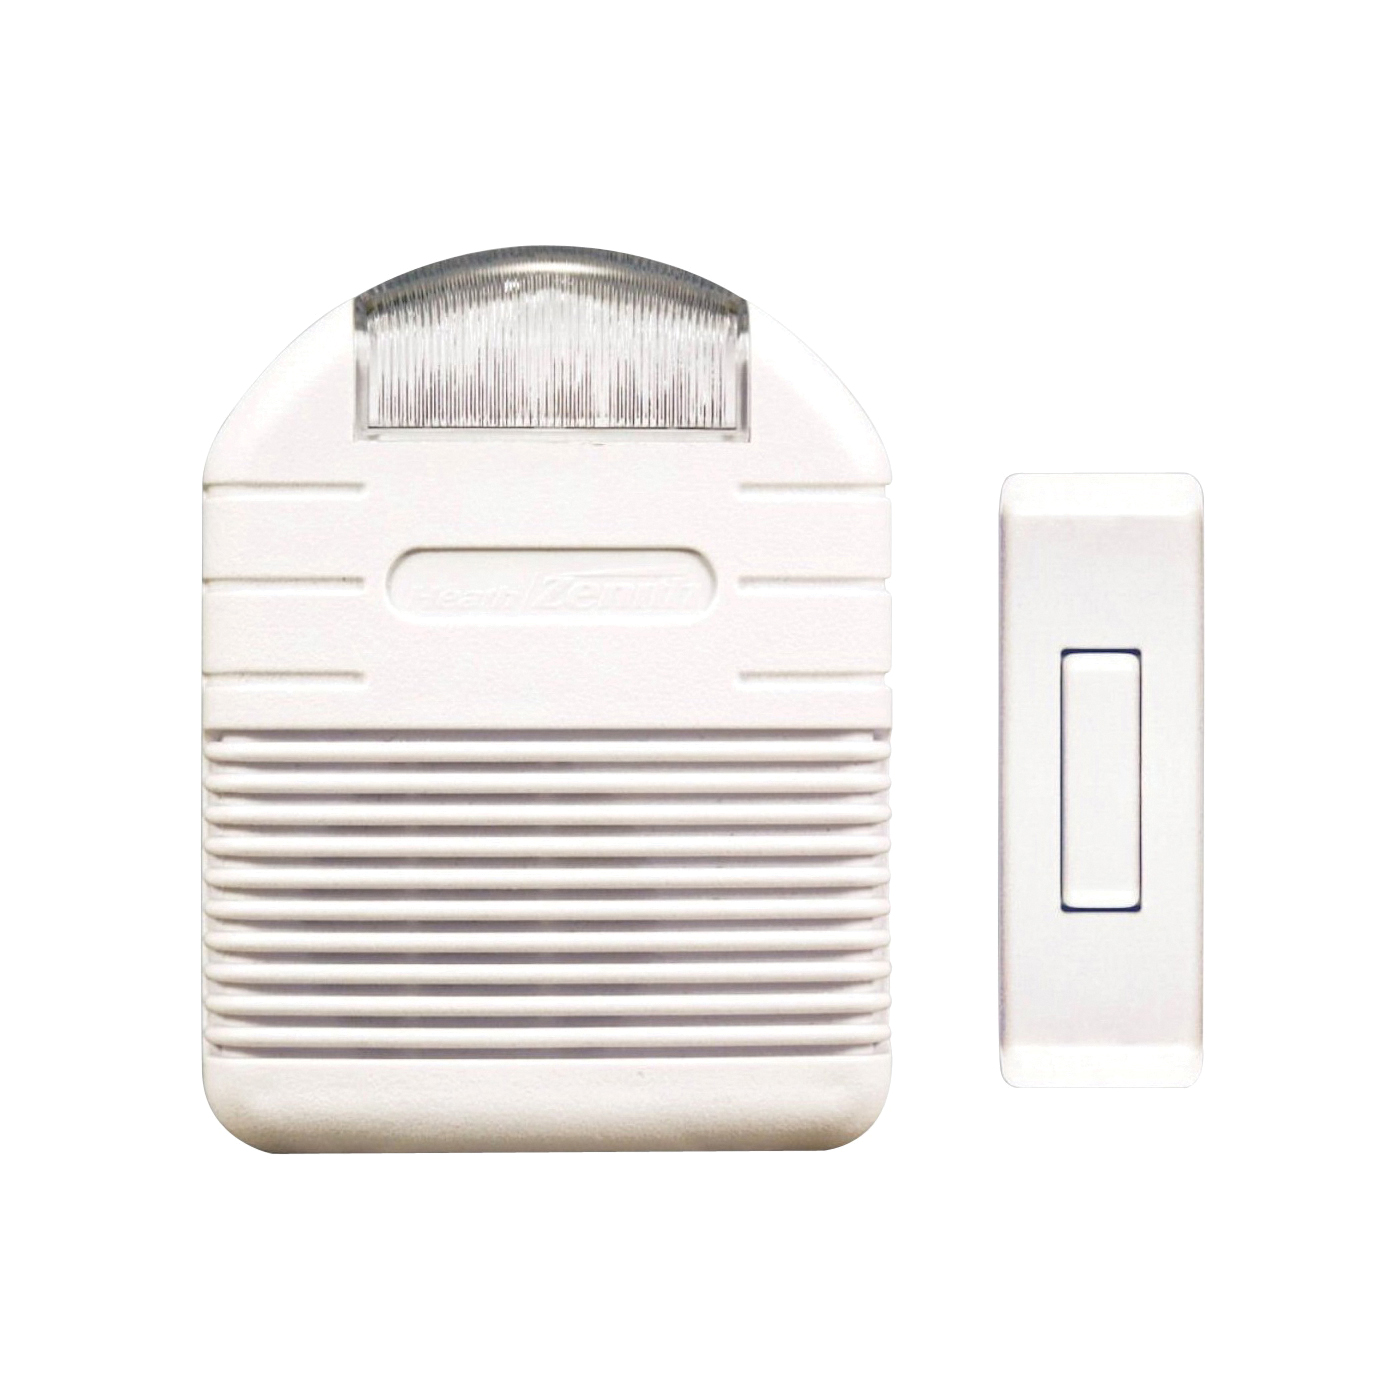 Picture of Heath Zenith SL-7744-02 Doorbell Strobe Light Kit, Wireless, Ding, Ding-Dong, Westminster Tone, 75 dB, White